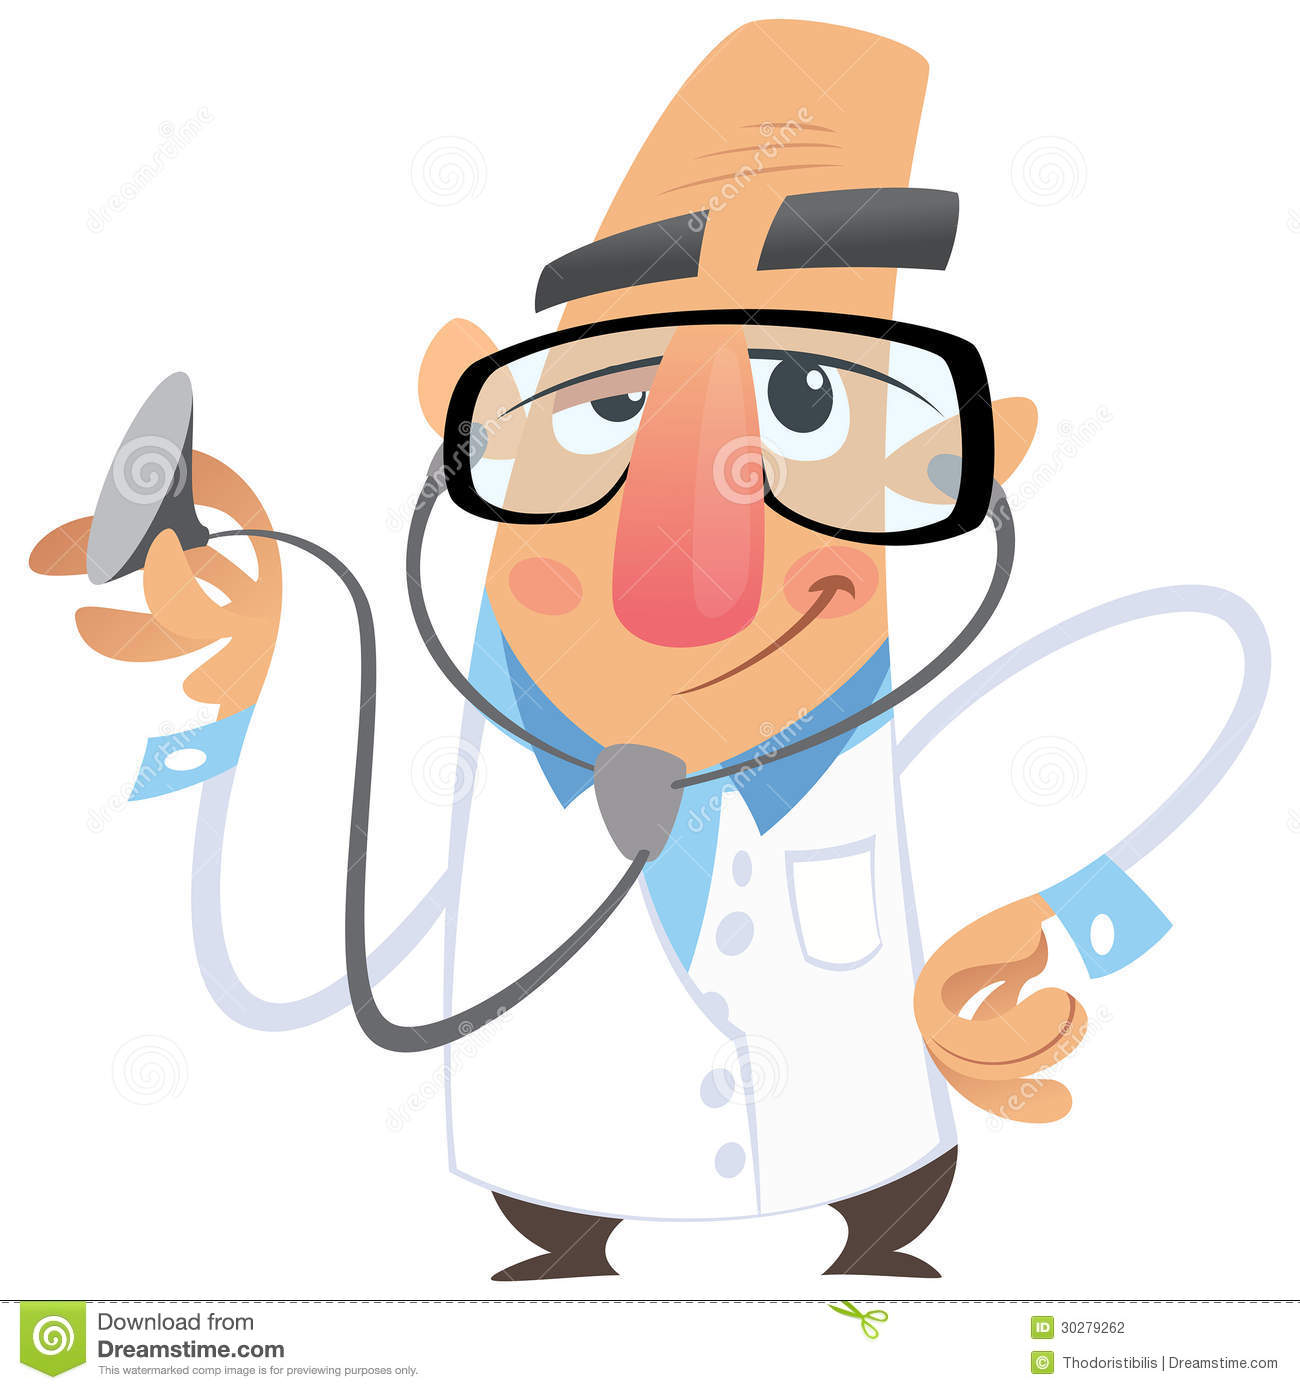 Cartoon man doctor smiling while examining using his stethoscope